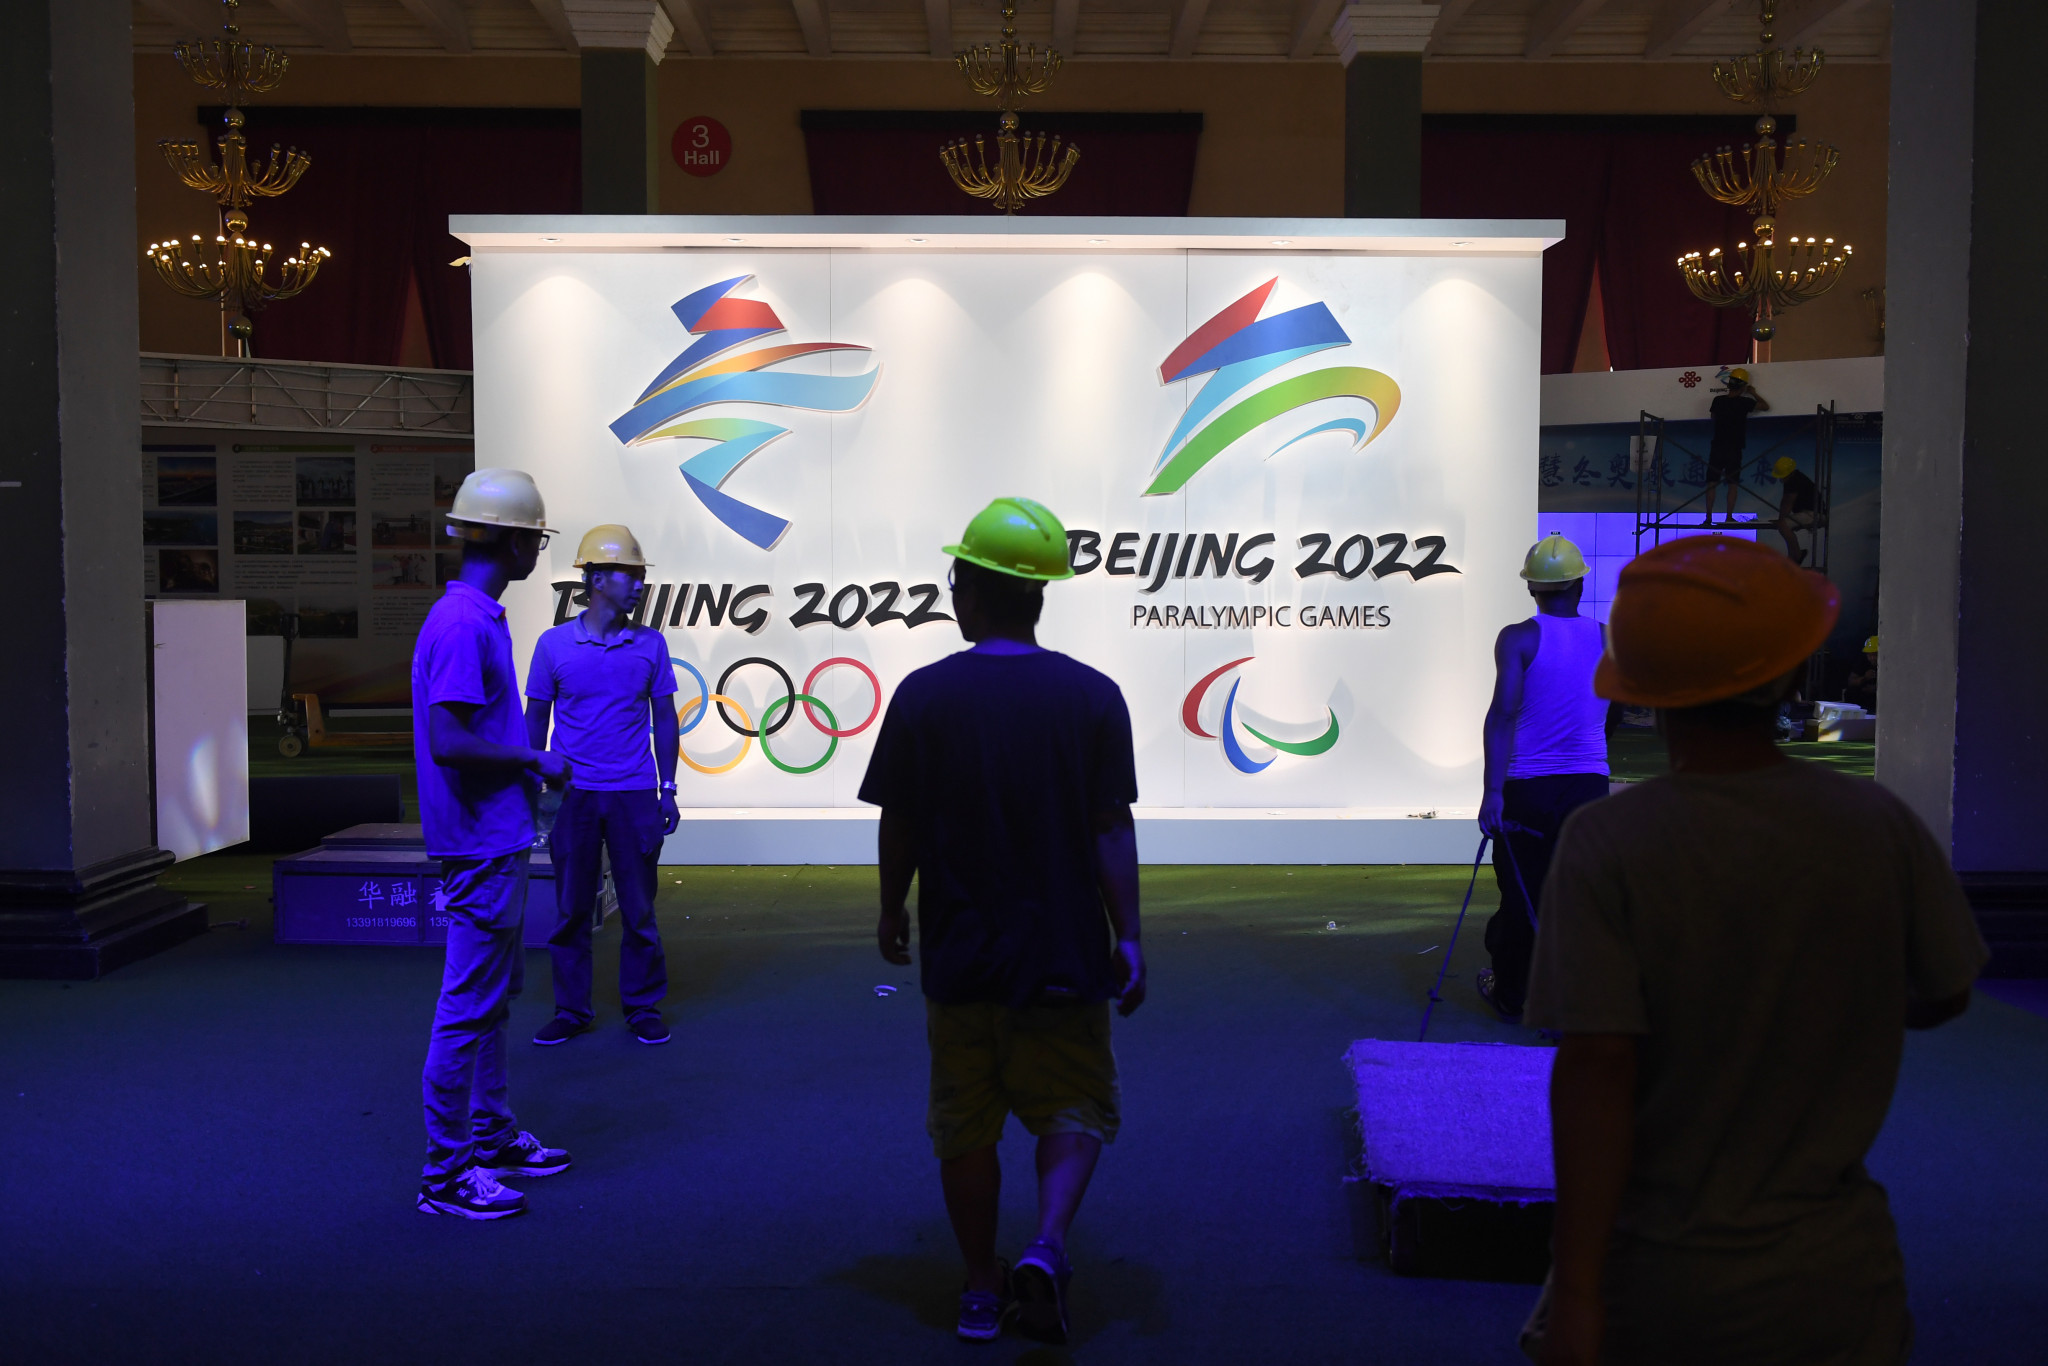 The 2022 Winter Olympics will open on February 4 in Beijing ©Getty Images